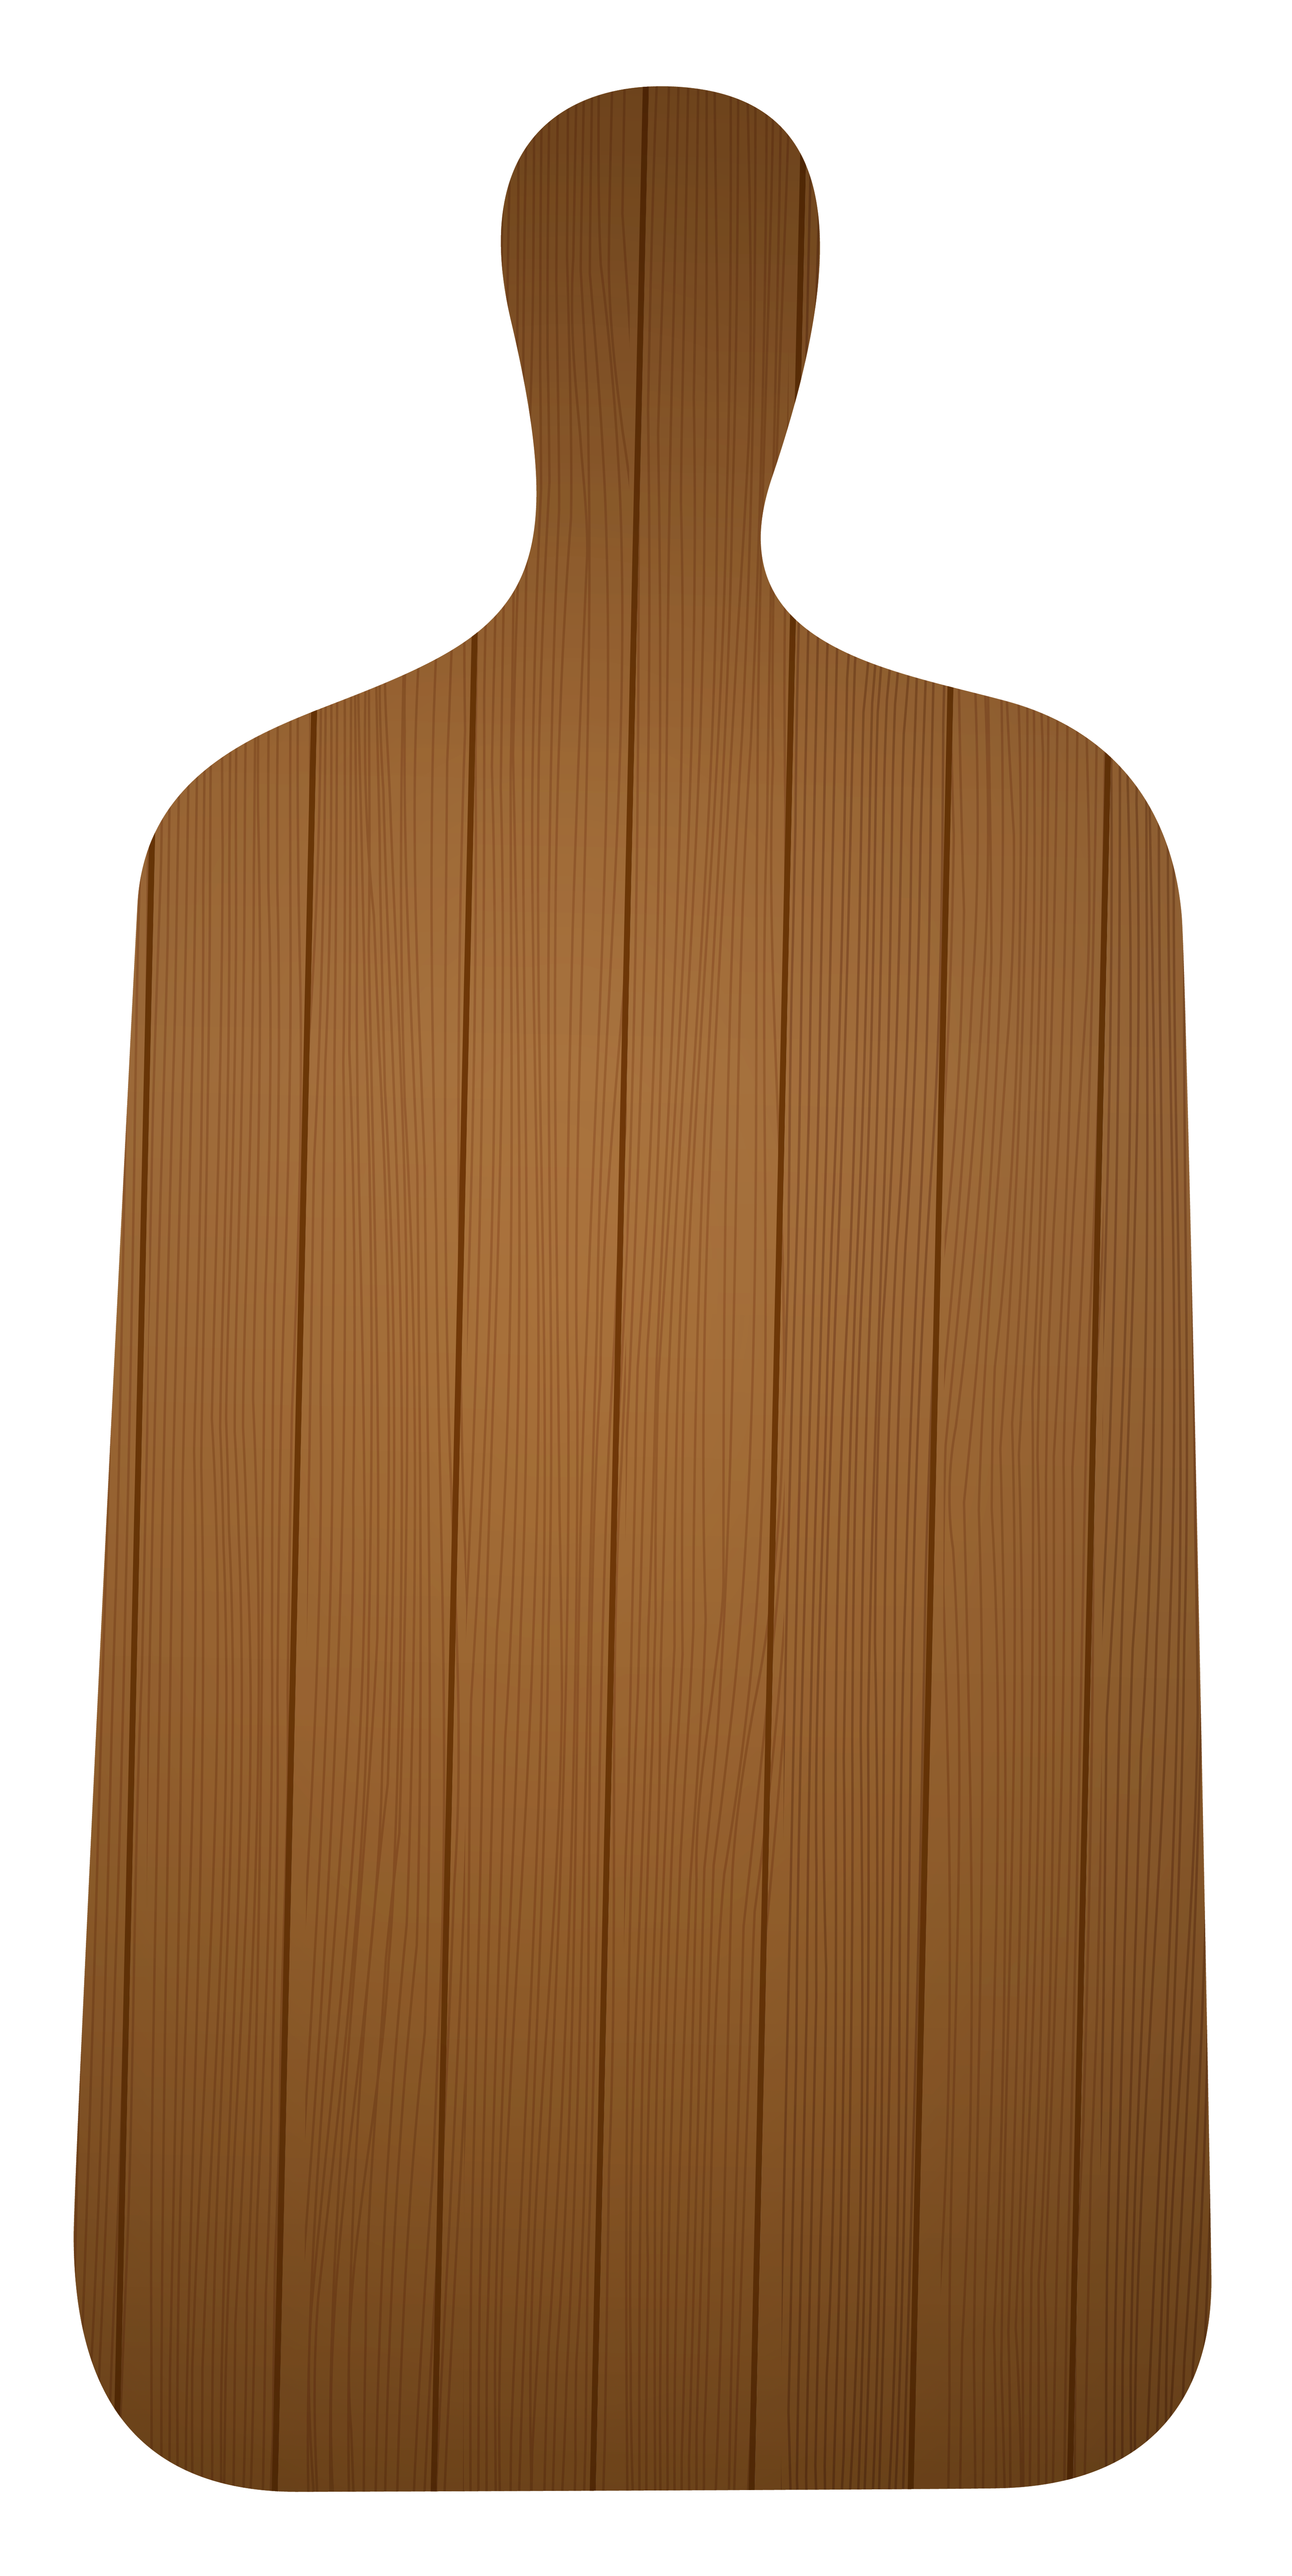 Wooden Cutting Boards PNG Clipart.